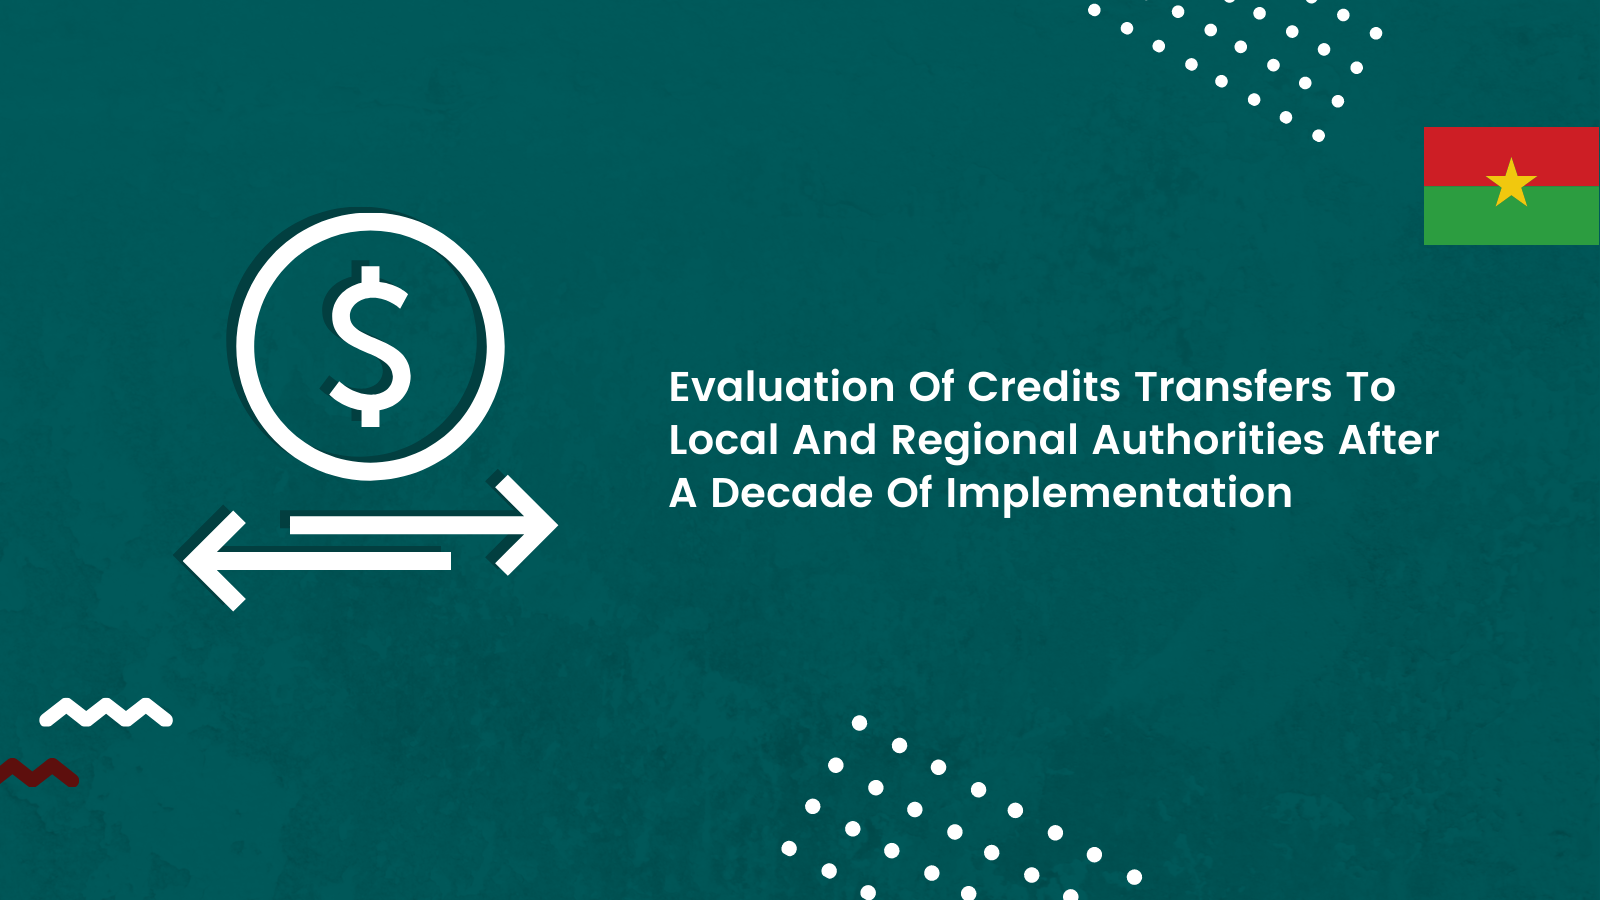 Evaluation of credits transfers to local and regional authorities after a decade of implementation